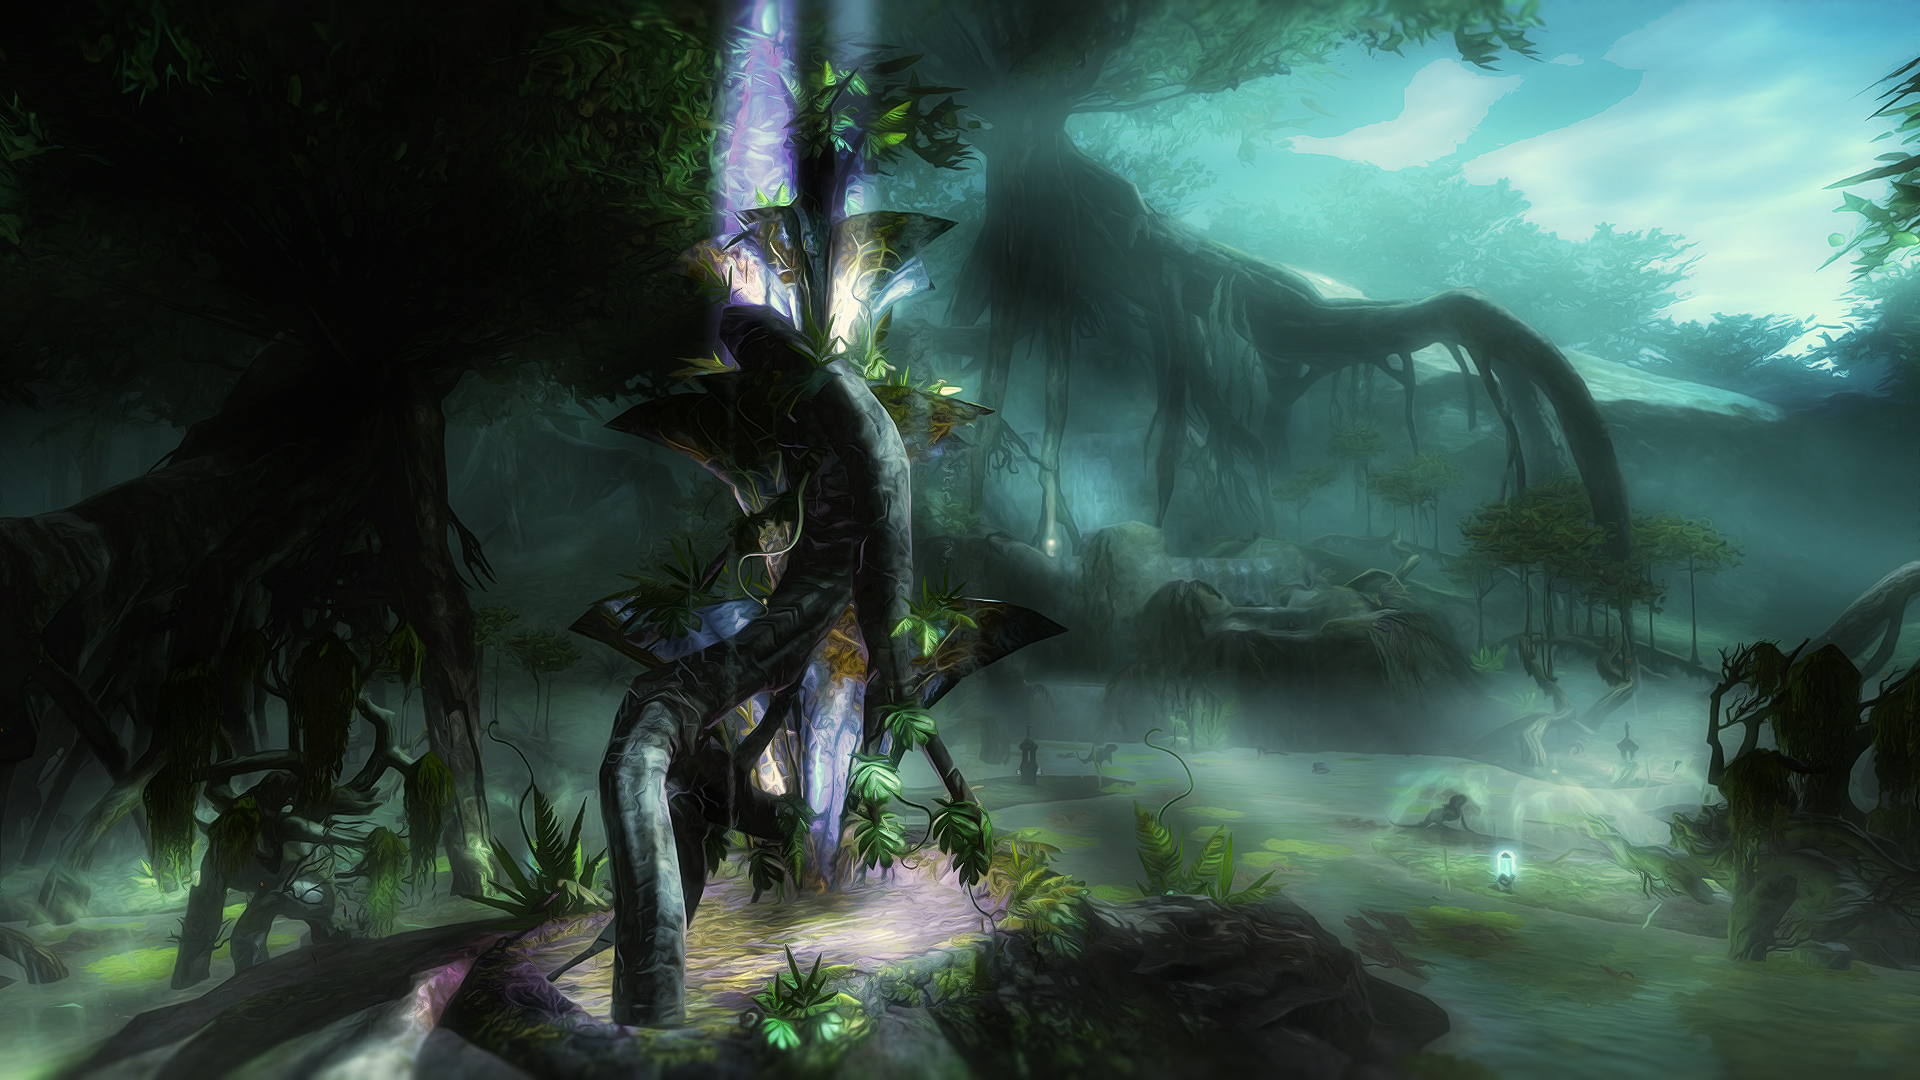 Free Download Tagged 1920x1080 Guild Wars 2 Wallpaper Leave A